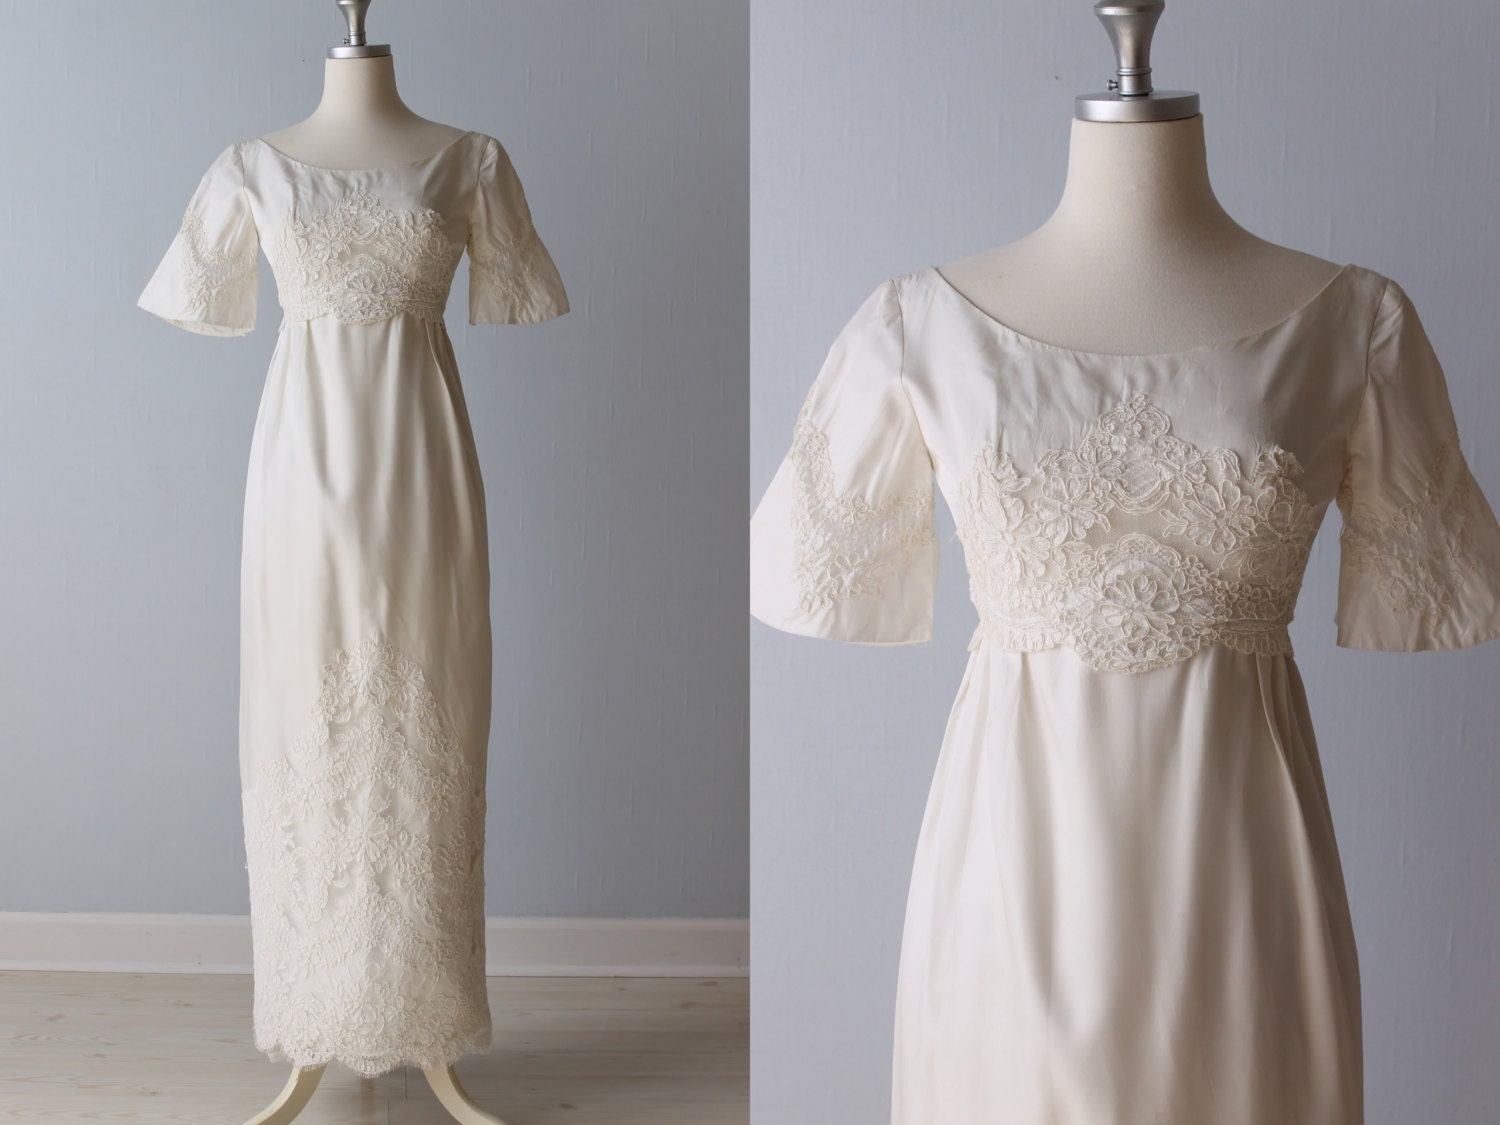 Vintage 1960s wedding dress 60s bridal gown lace sheath for 1960 style wedding dresses